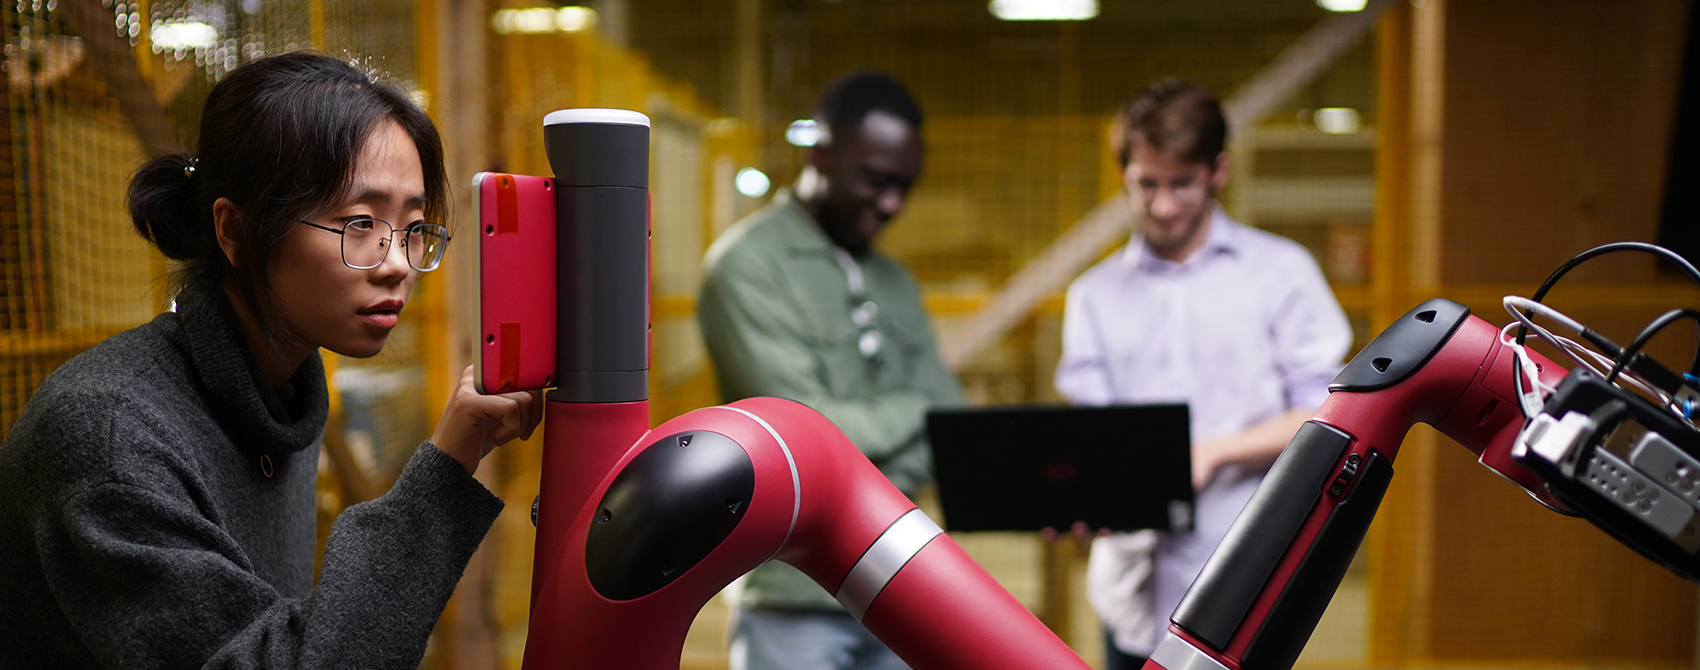 Students work with Robot in engineering lab. Photo credit: Steer